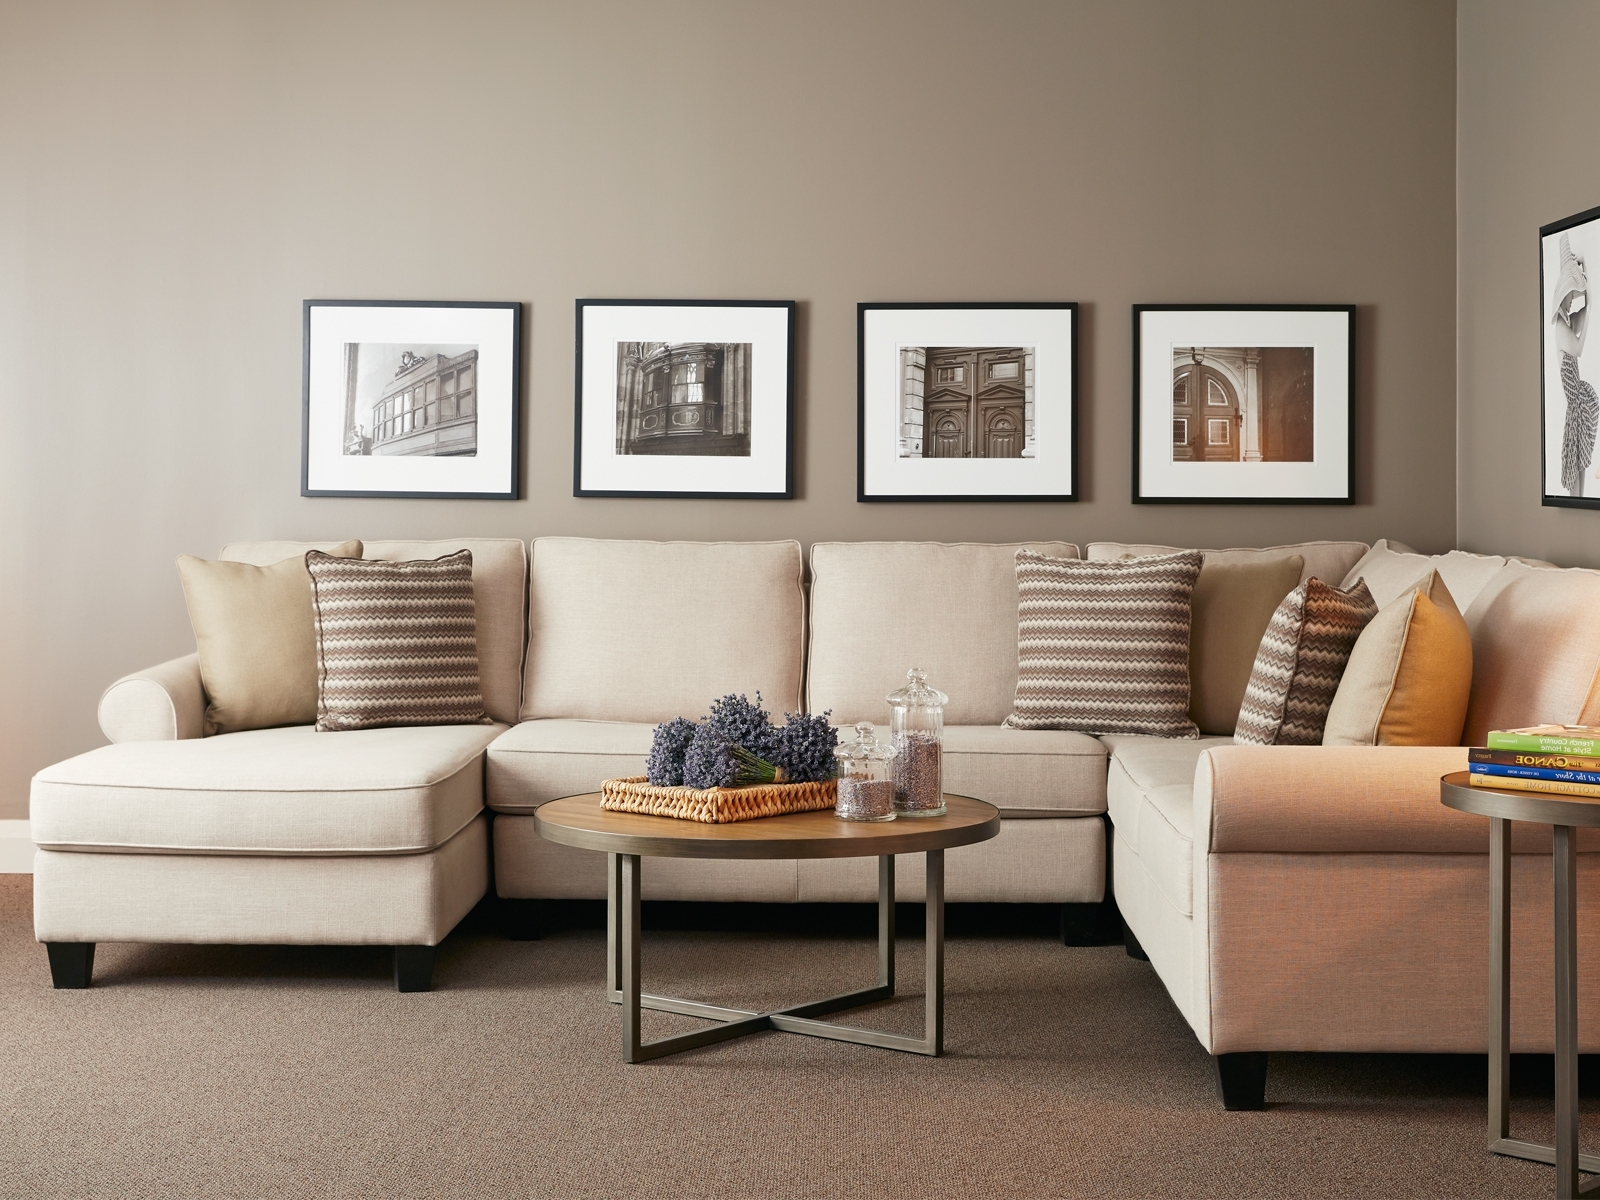 Brentwood Classics With Regard To Ontario Canada Sectional Sofas (View 2 of 15)